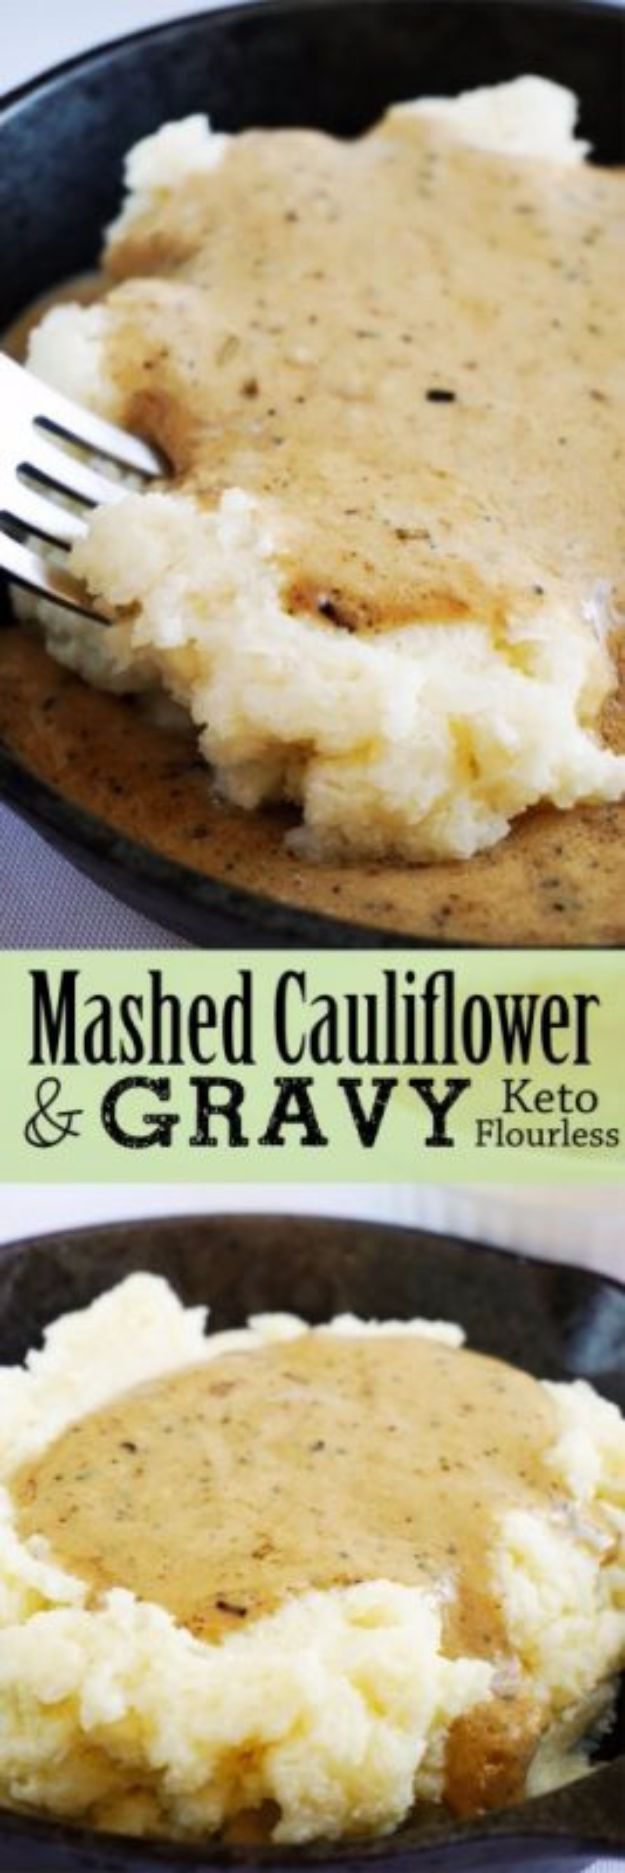 Best Thanksgiving Side Dishes - Creamy Cauliflower Mash - Easy Make Ahead and Crockpot Versions of the Best Thanksgiving Recipes #thanksgiving #recipes